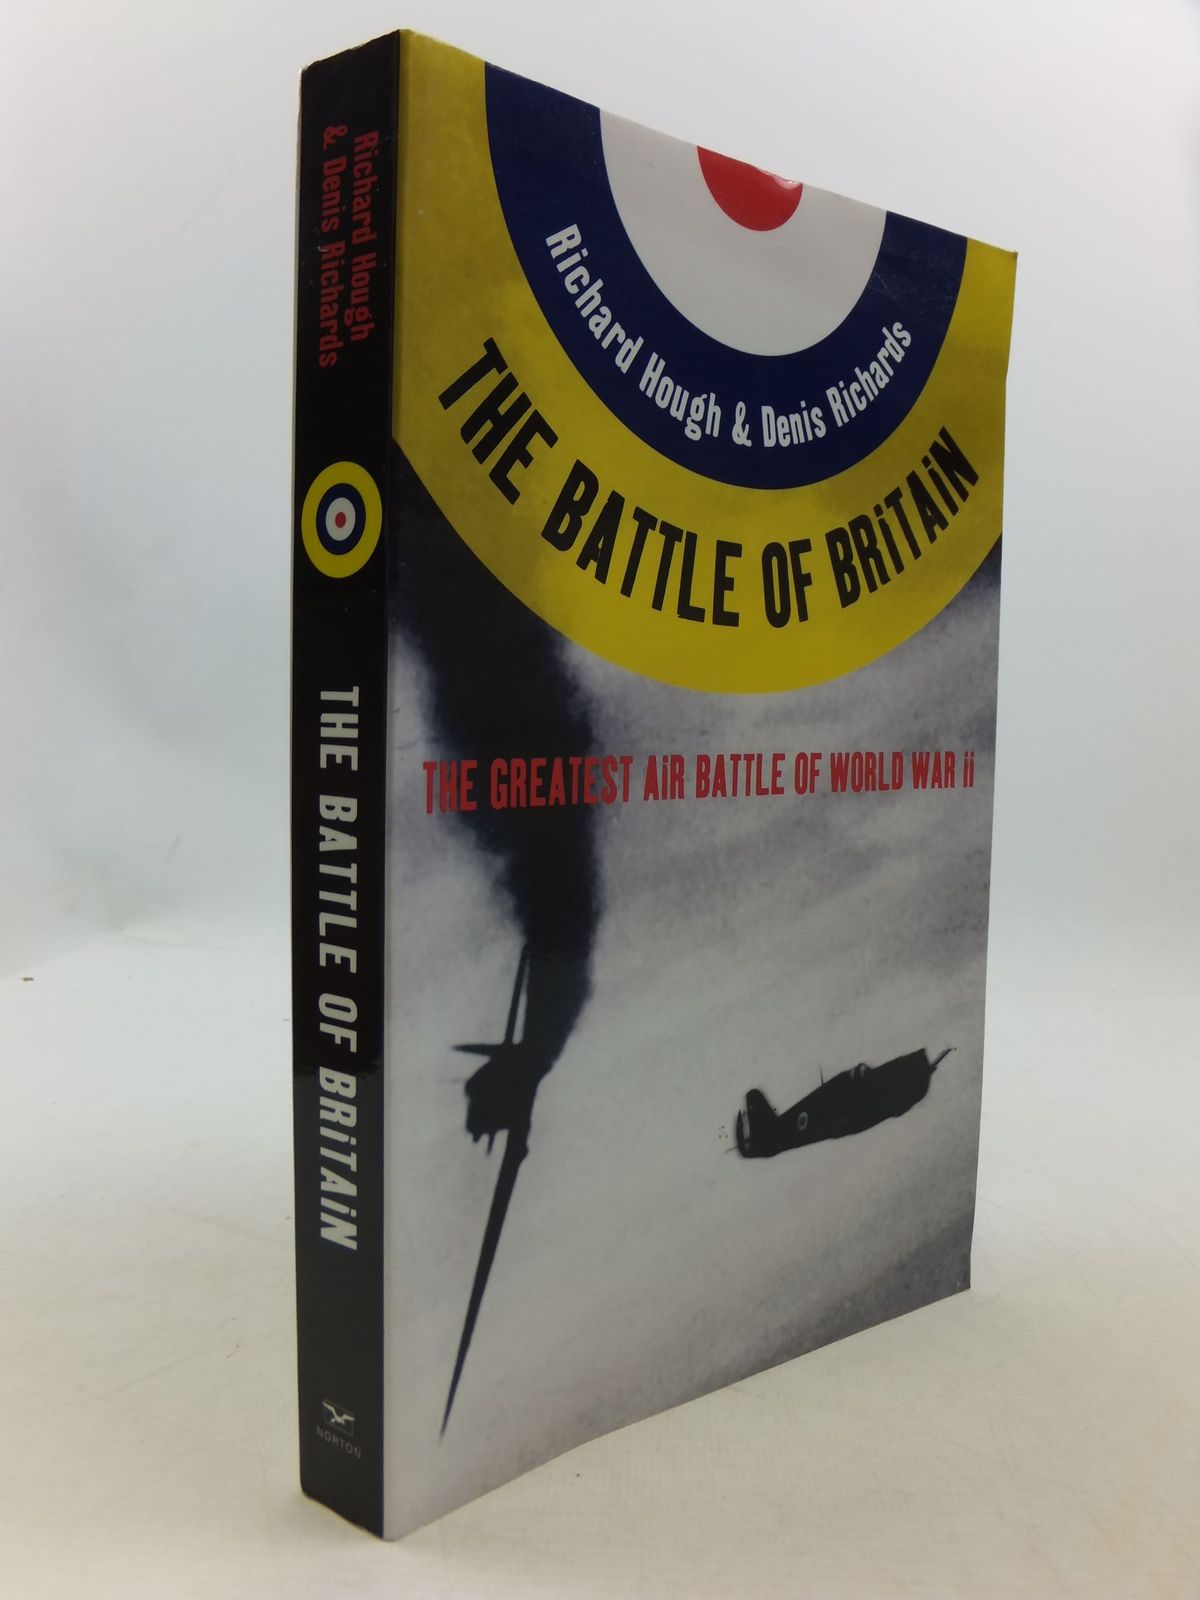 Photo of THE BATTLE OF BRITAIN THE GREATEST AIR BATTLE OF WORLD WAR II written by Hough, Richard<br />Richards, Denis published by W.W. Norton &amp; Company Inc. (STOCK CODE: 1708494)  for sale by Stella & Rose's Books